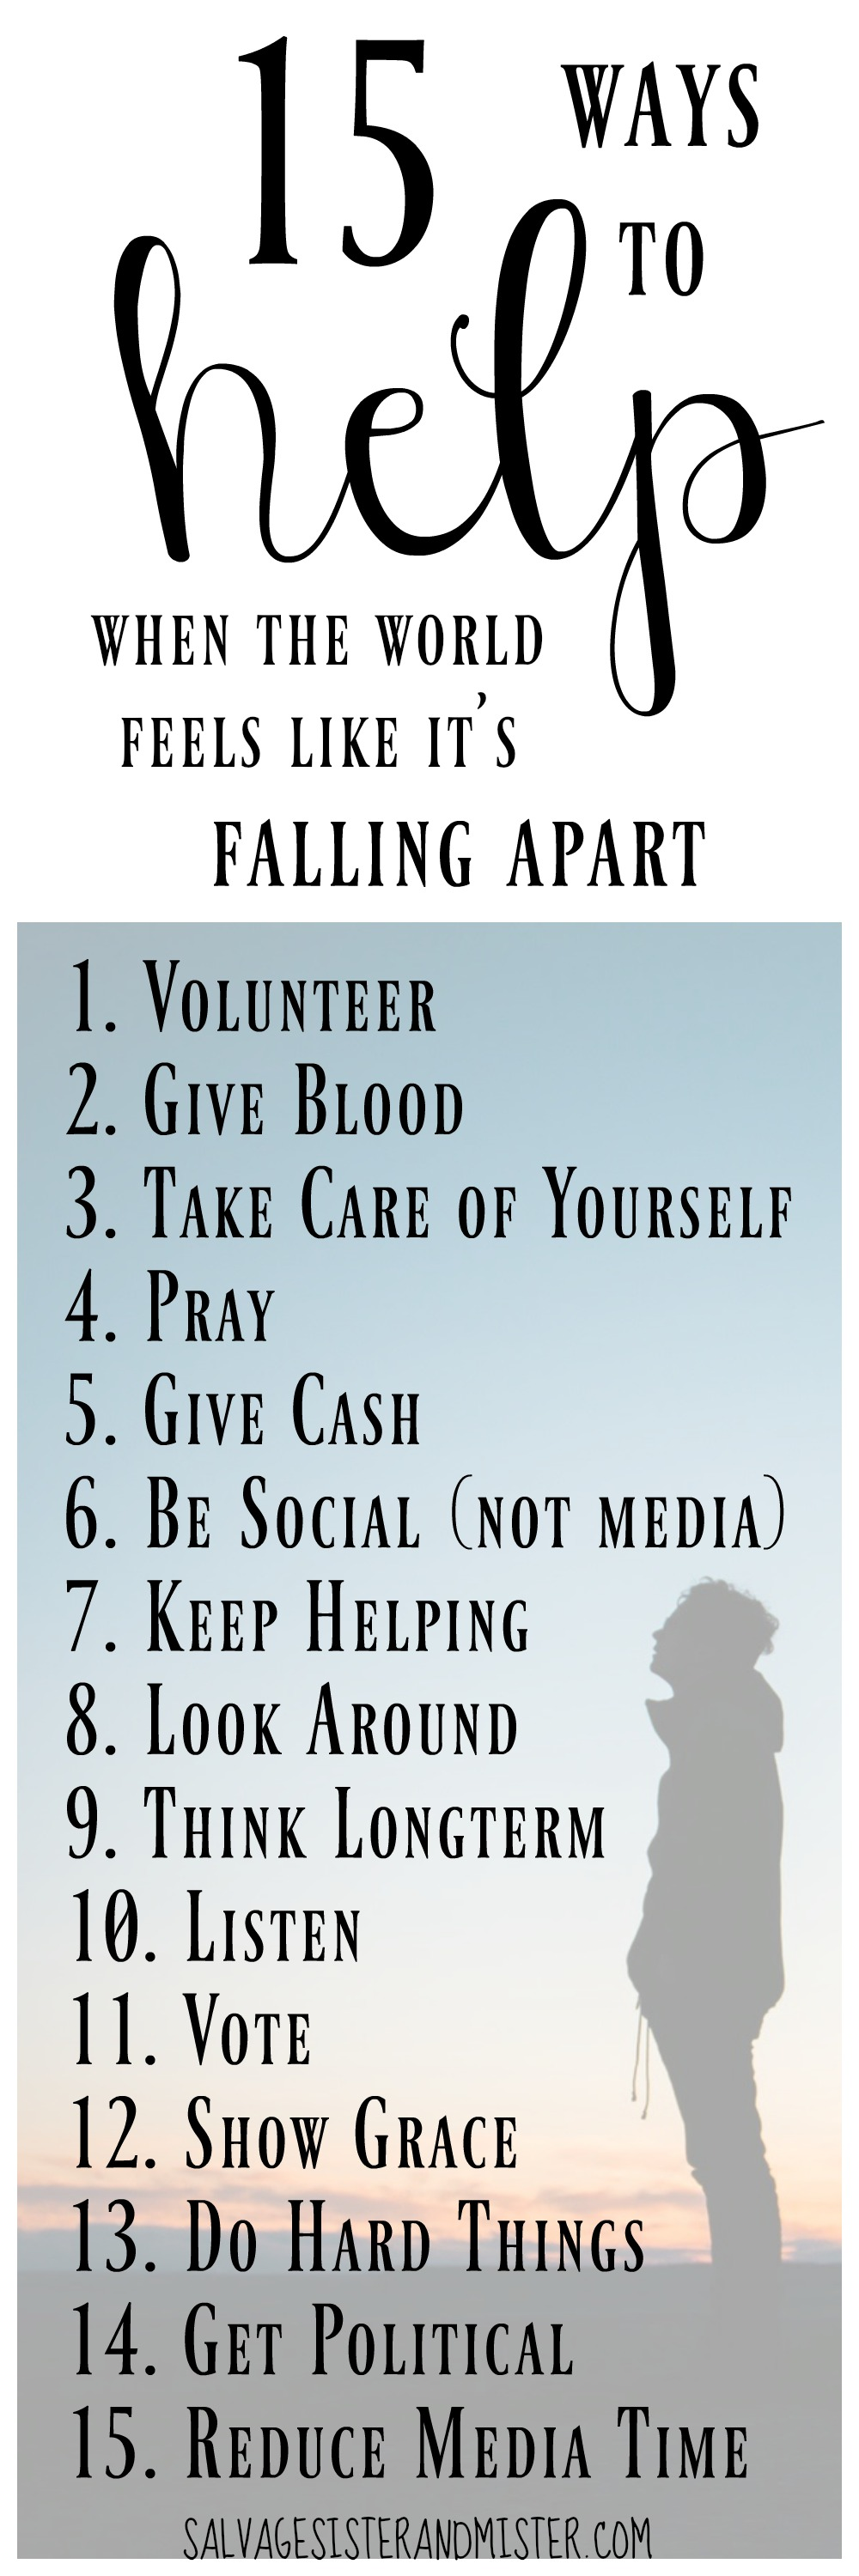 15 Ways to help when the world feels like it's falling apart.  After a tragic event we often don't know what to do.  Here are 15 actions to take personally to help one another and ourselves from being stressed, depressed, and feeling like the world is terrible.  volunteer, pray, give blood, give financially, keep helping, etc.  Inspire others and we might just be the change we are looking for.